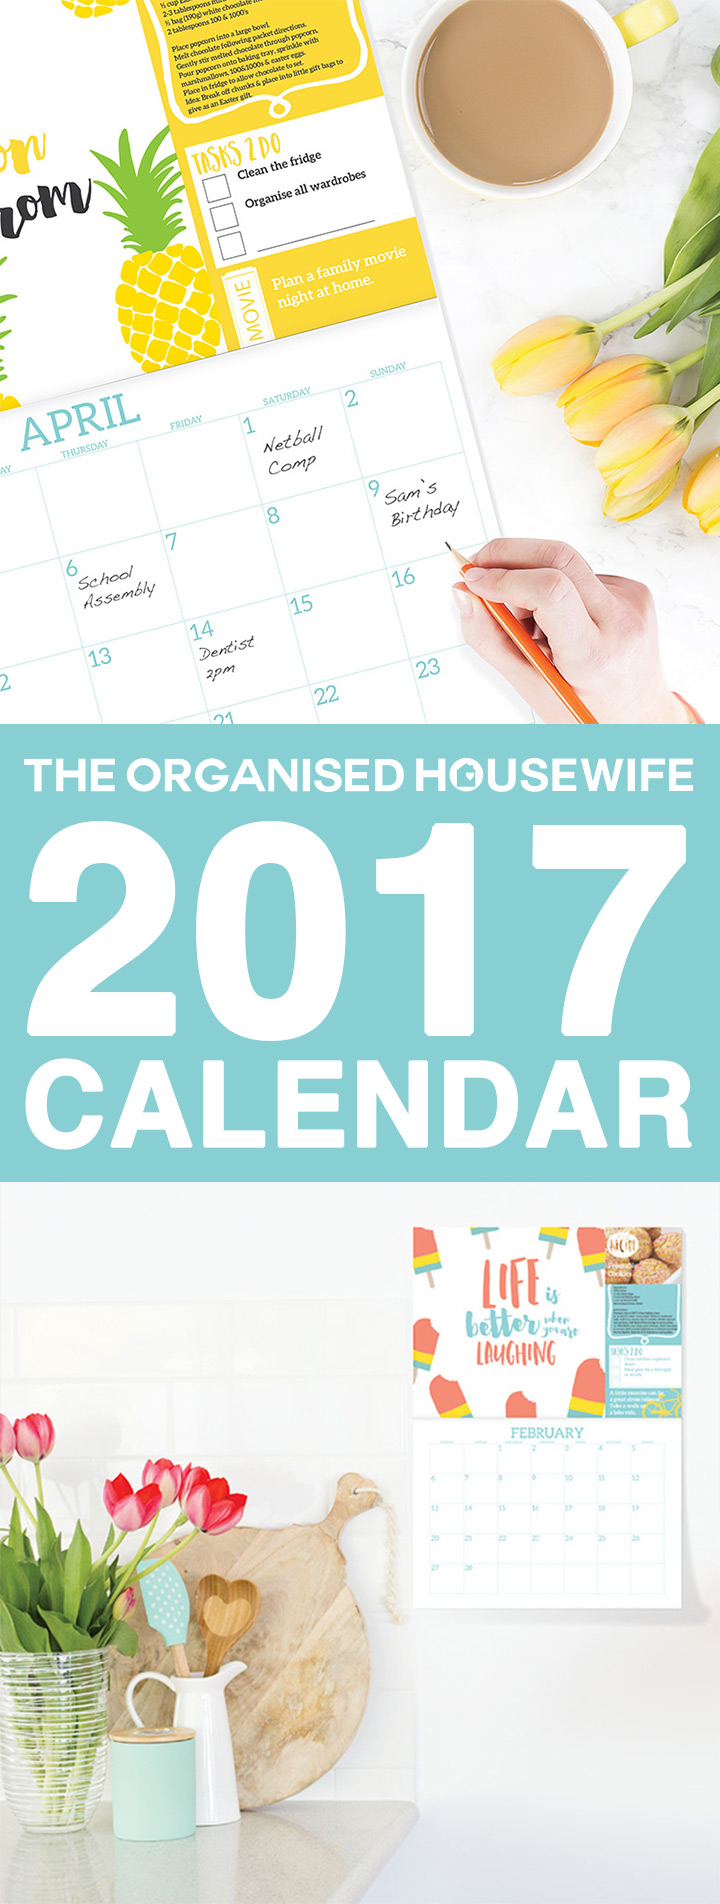 My 2017 calendar is inspiring and vibrant, because being organised shouldn't be boring! Filled with bright and colourful designs to inspire and motivate you. I want you to look at the calendar and feel encouraged to achieve new things! Each month has a unique feel and features fun and quirky graphics.